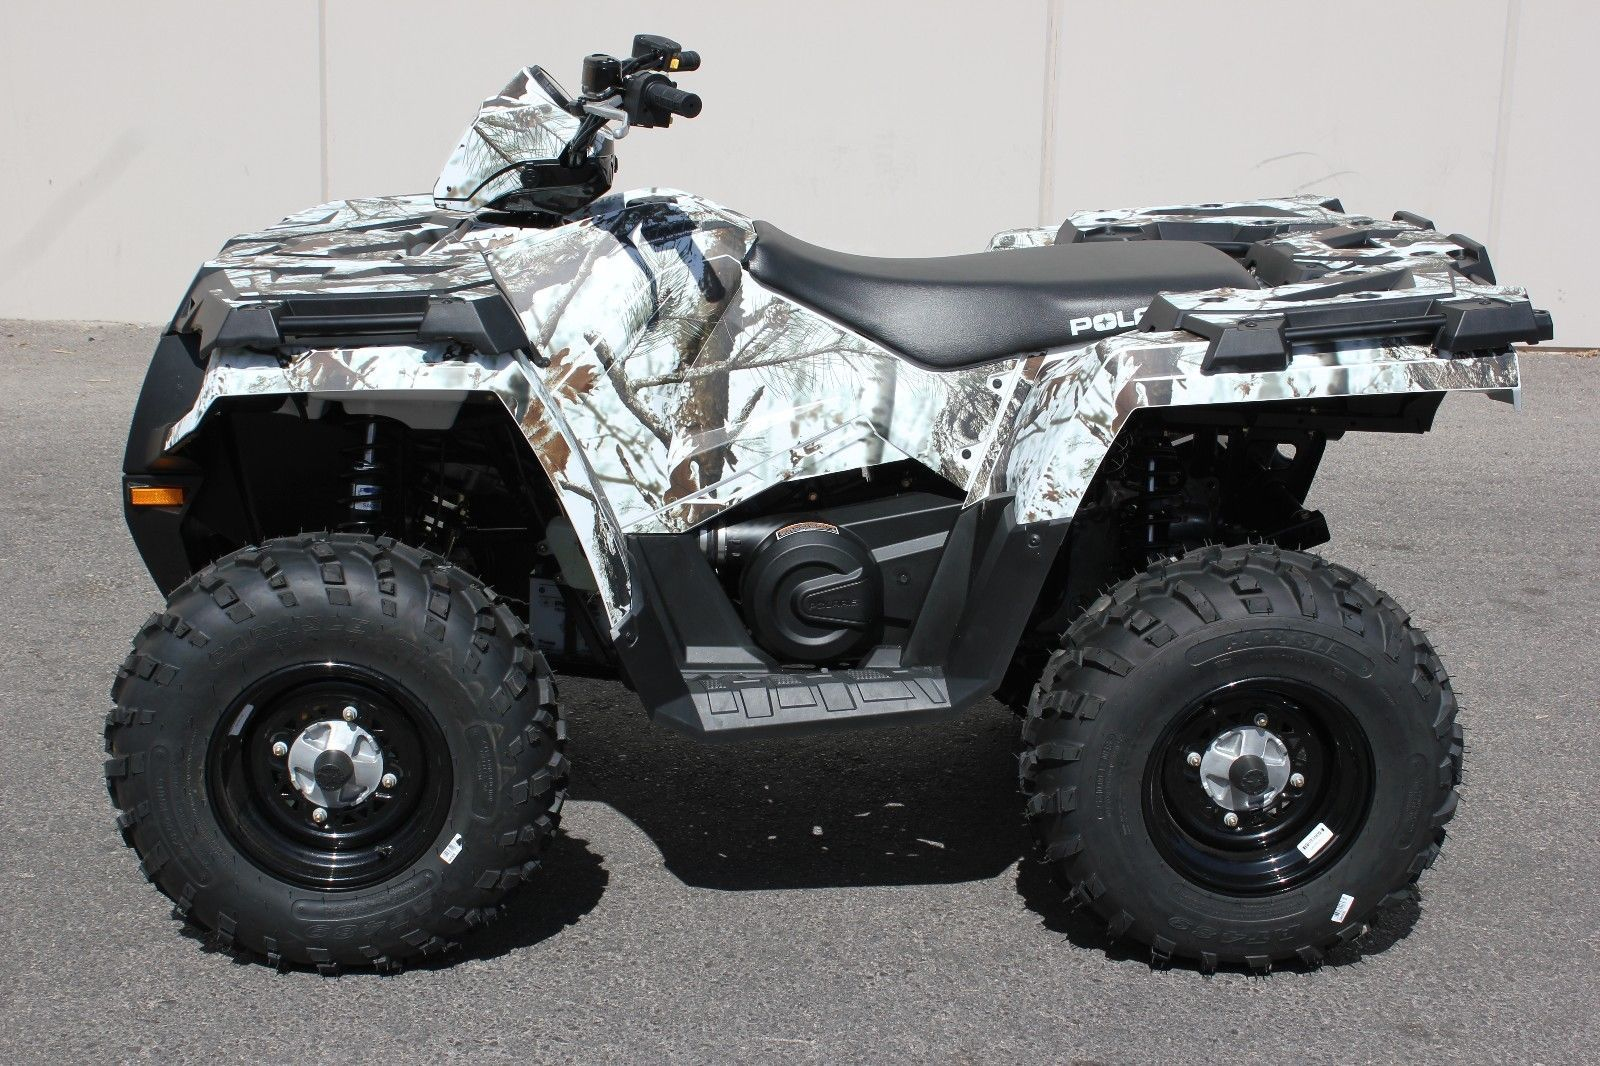 polaris sportsman 570 graphic kit wrap quad amr racing decal atv 14 17 snow camo decals emblems. Black Bedroom Furniture Sets. Home Design Ideas